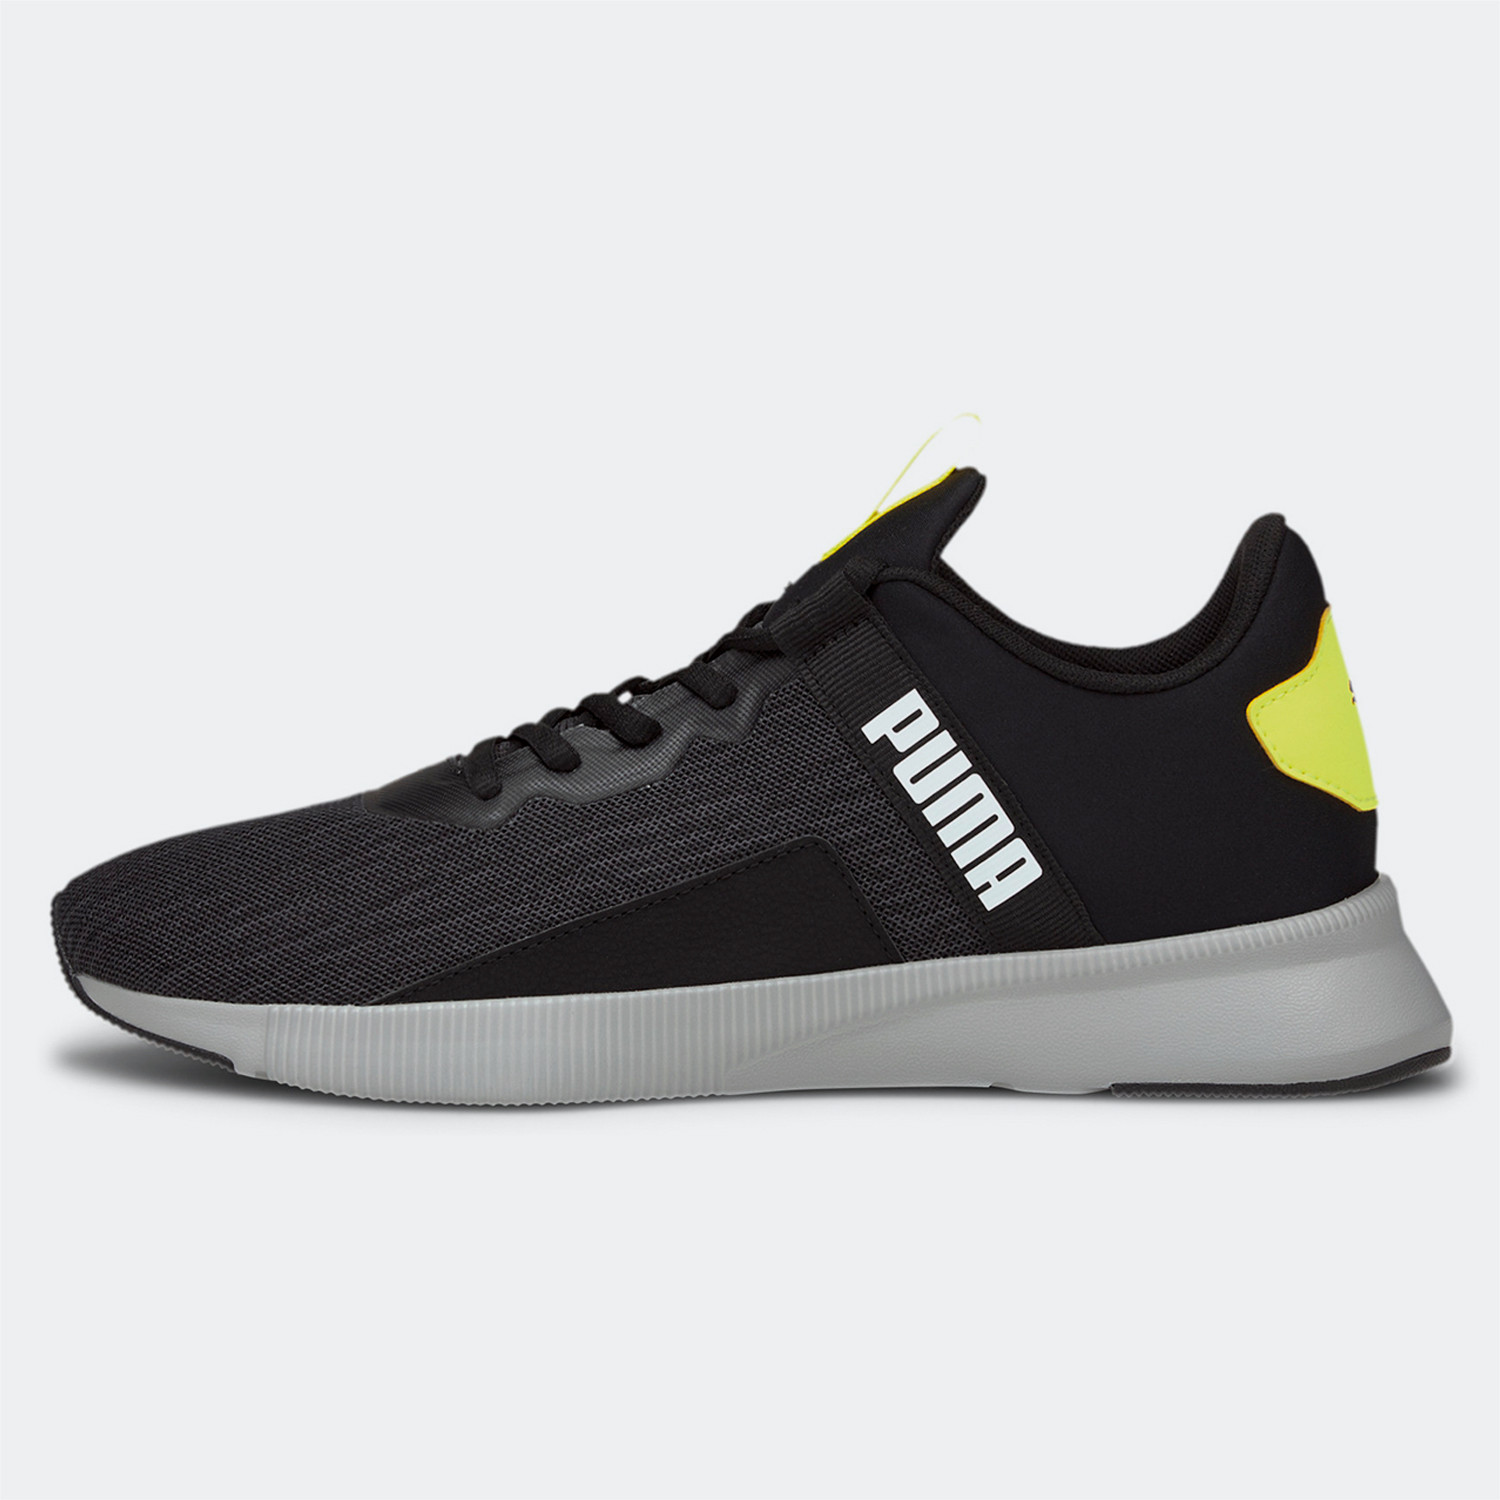 Puma Flyer Beta Footwear (9000072643_46986)